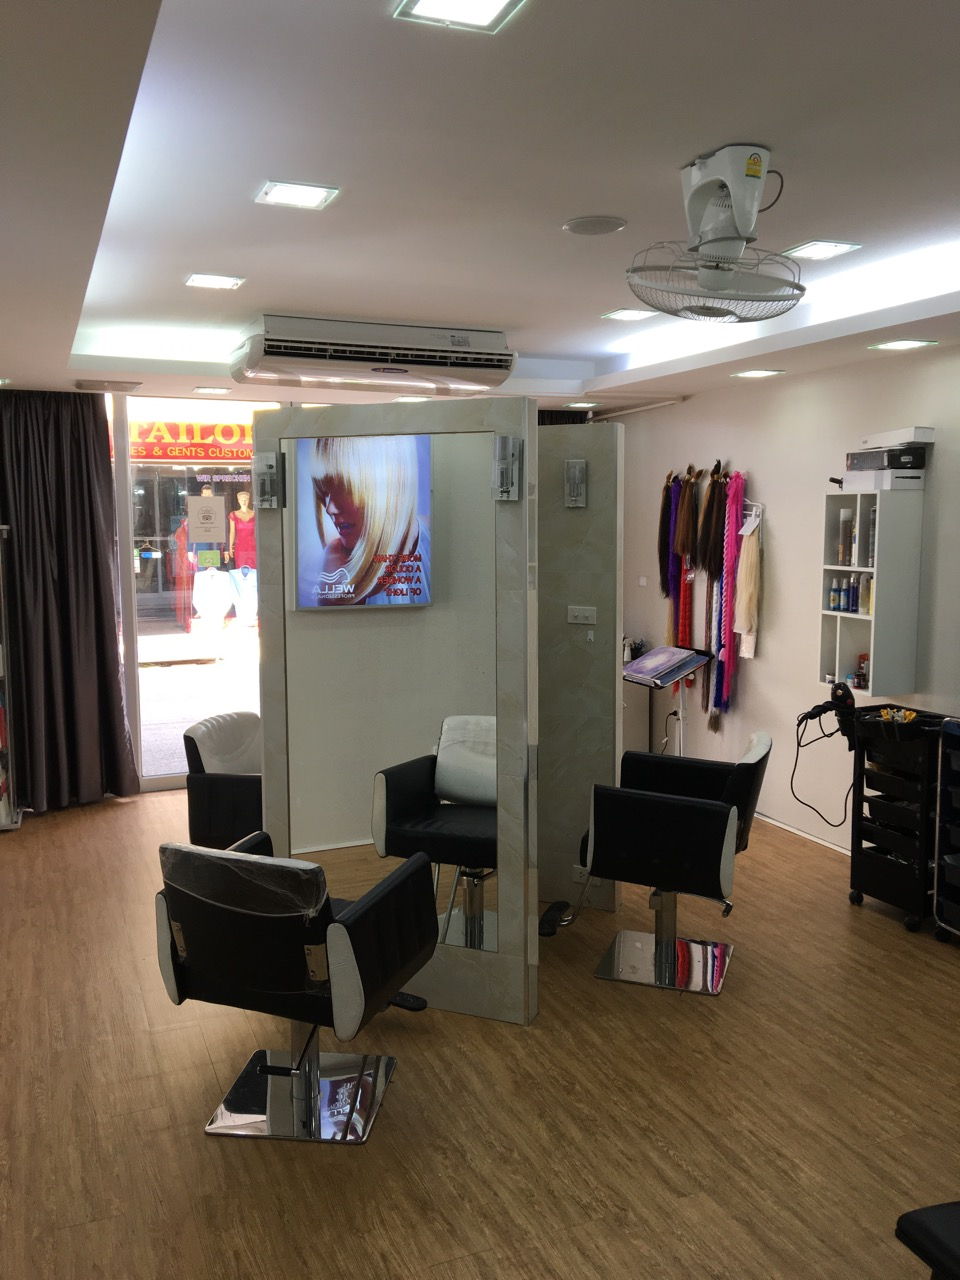 vayo-massage-hair-salon